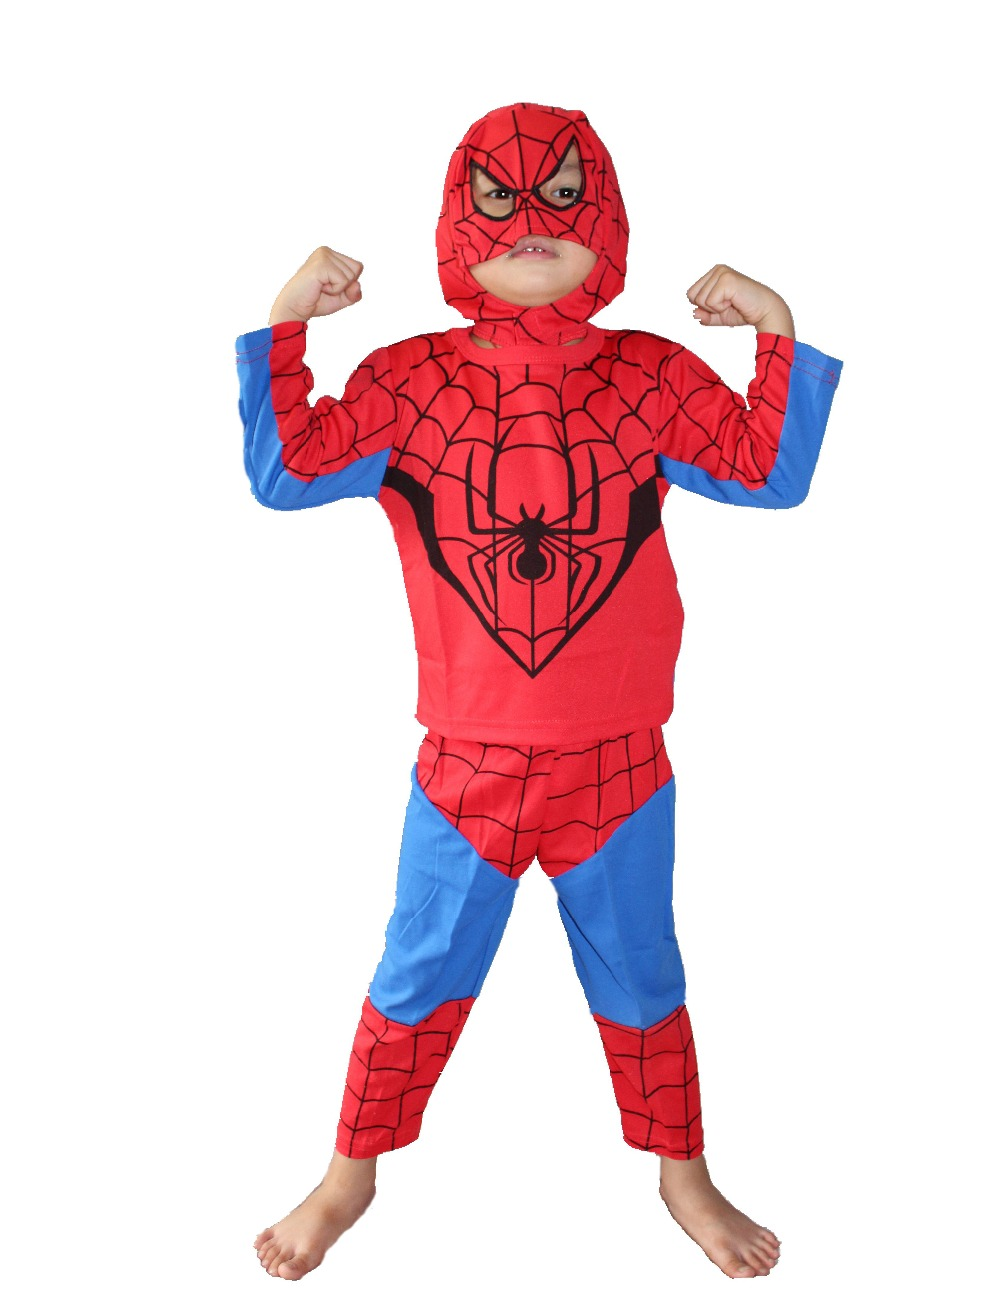 Wholesale -retail 3 - 7 years Halloween Party costumeskids Long sleeve spider-man Role-playing clothing,GHOST roll play